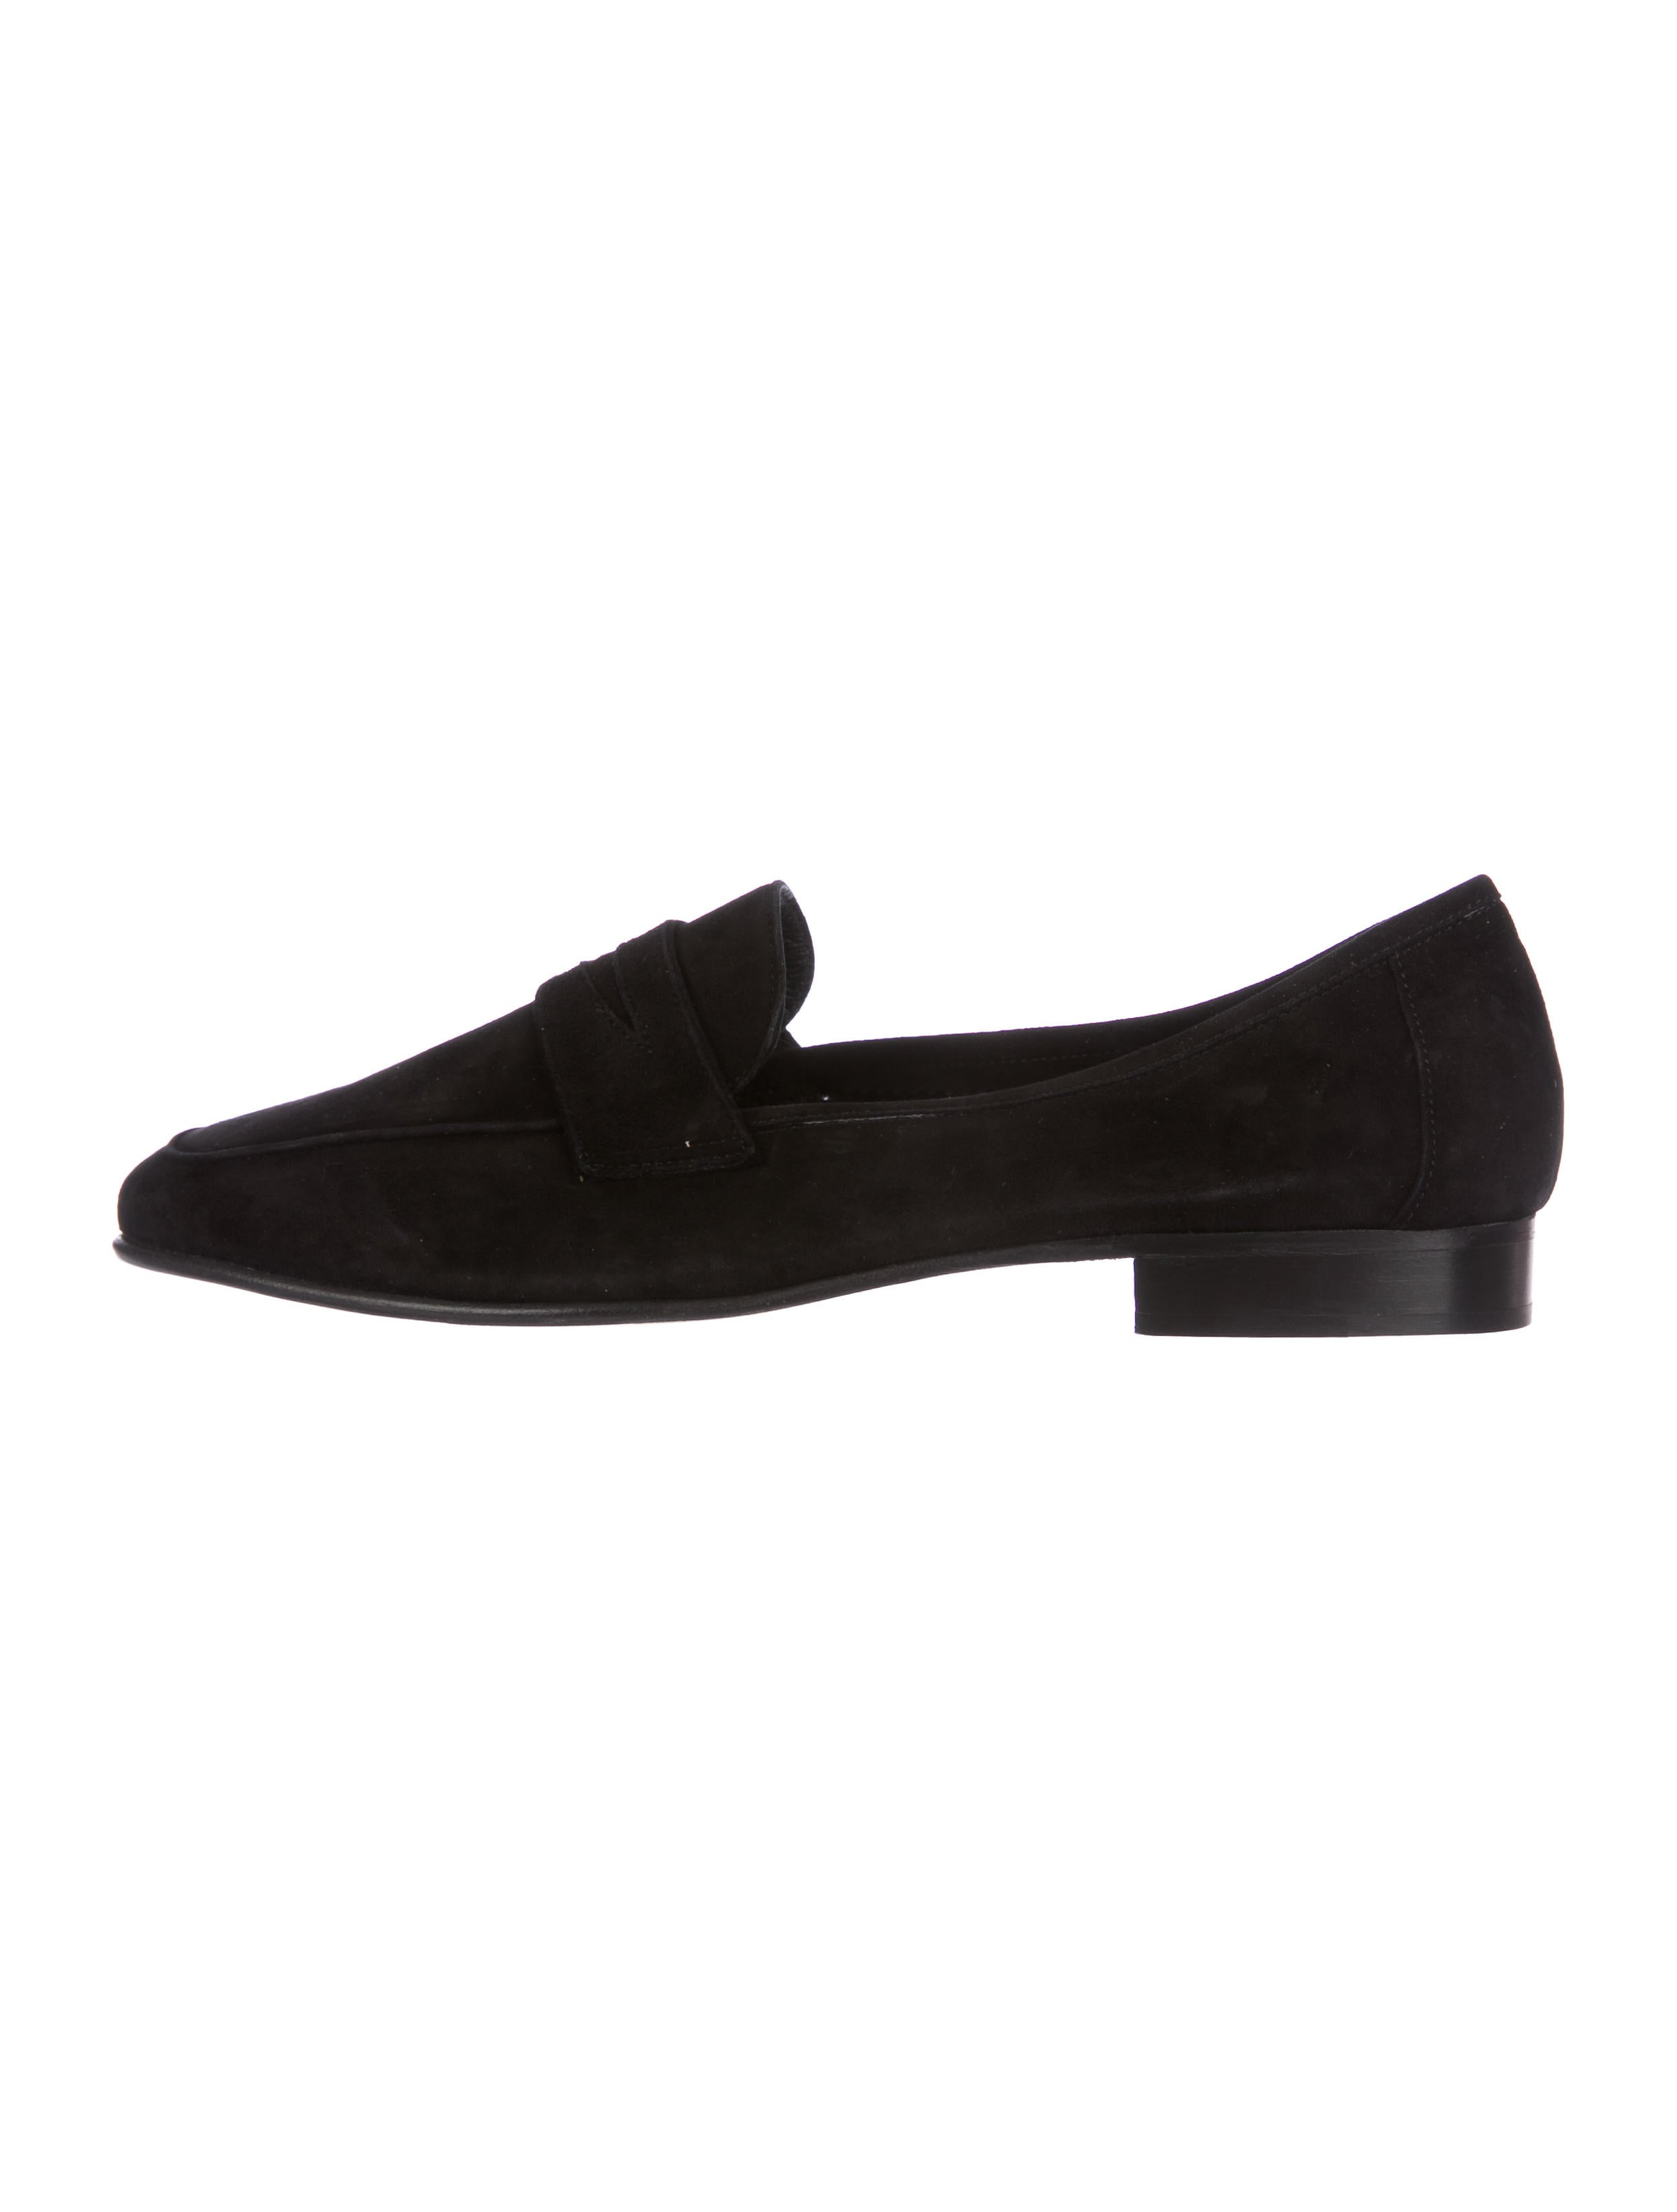 Mansur Gavriel Suede Round-Toe Loafers clearance original AN6npi